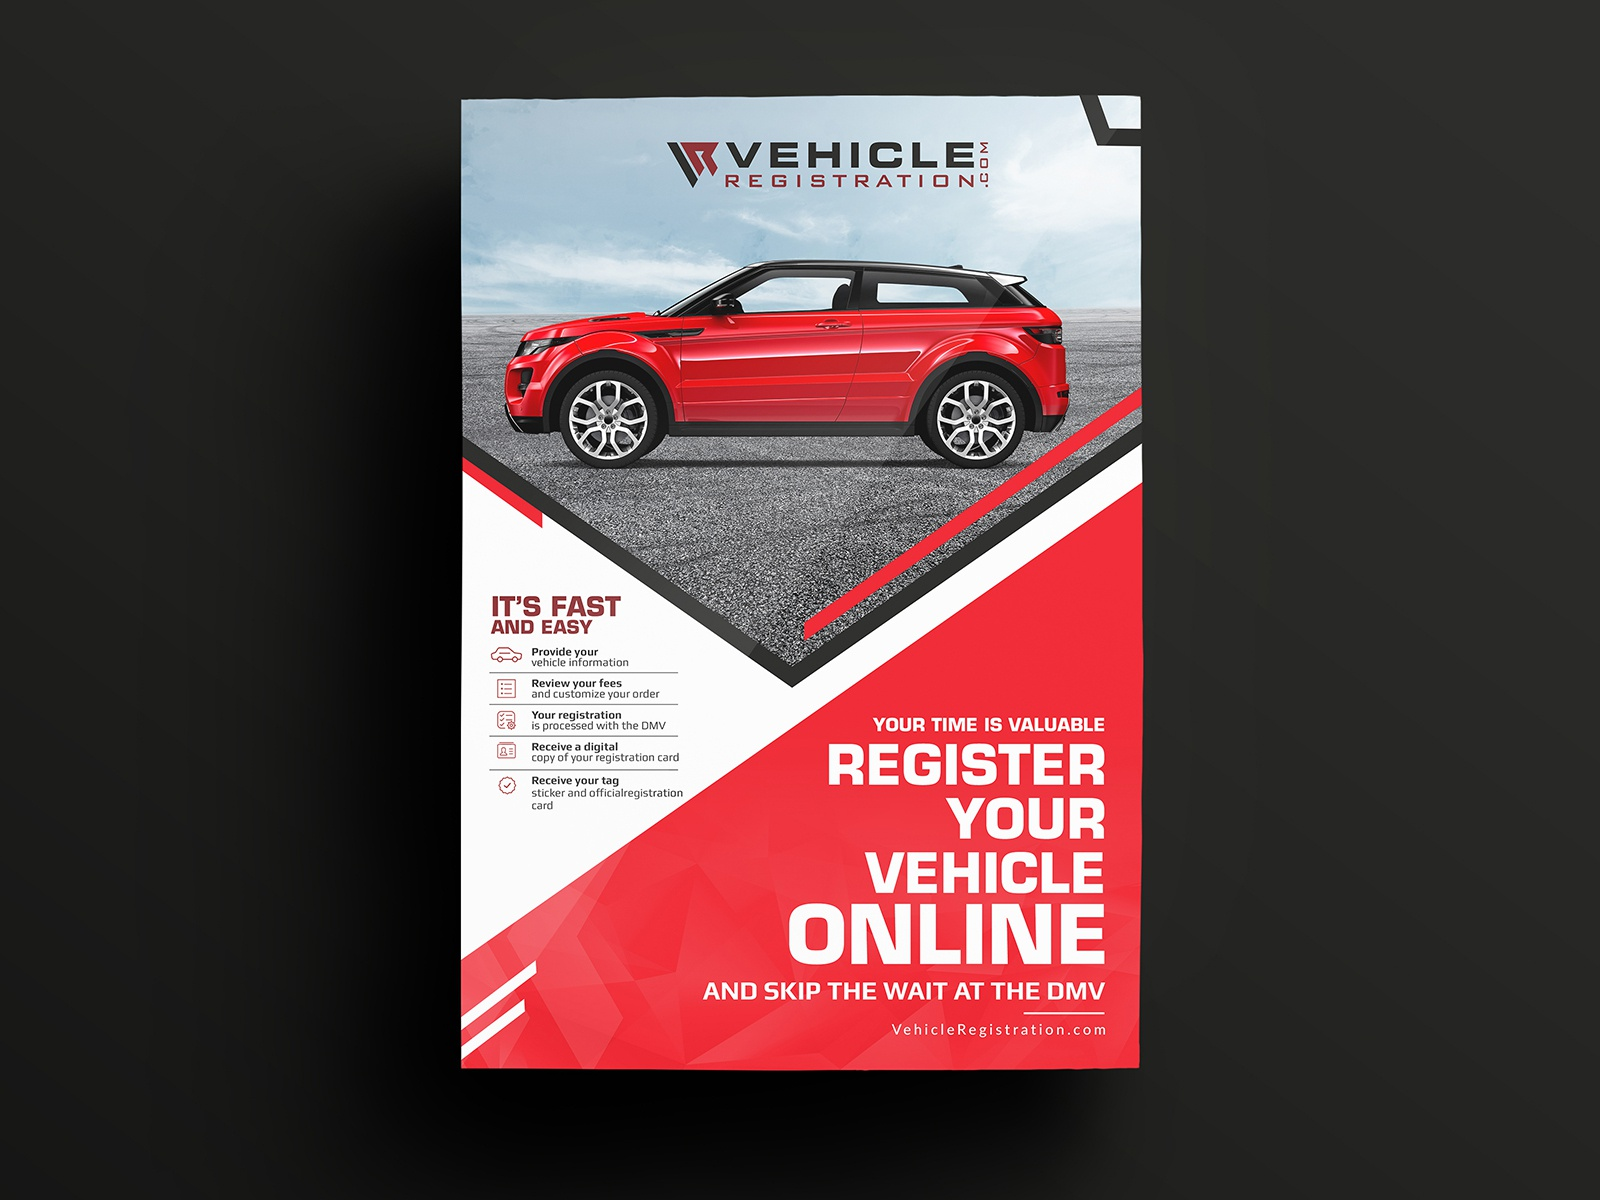 Customize Your Car Online >> Register Your Vehicle Online Flyer Design By Nisha Droch On